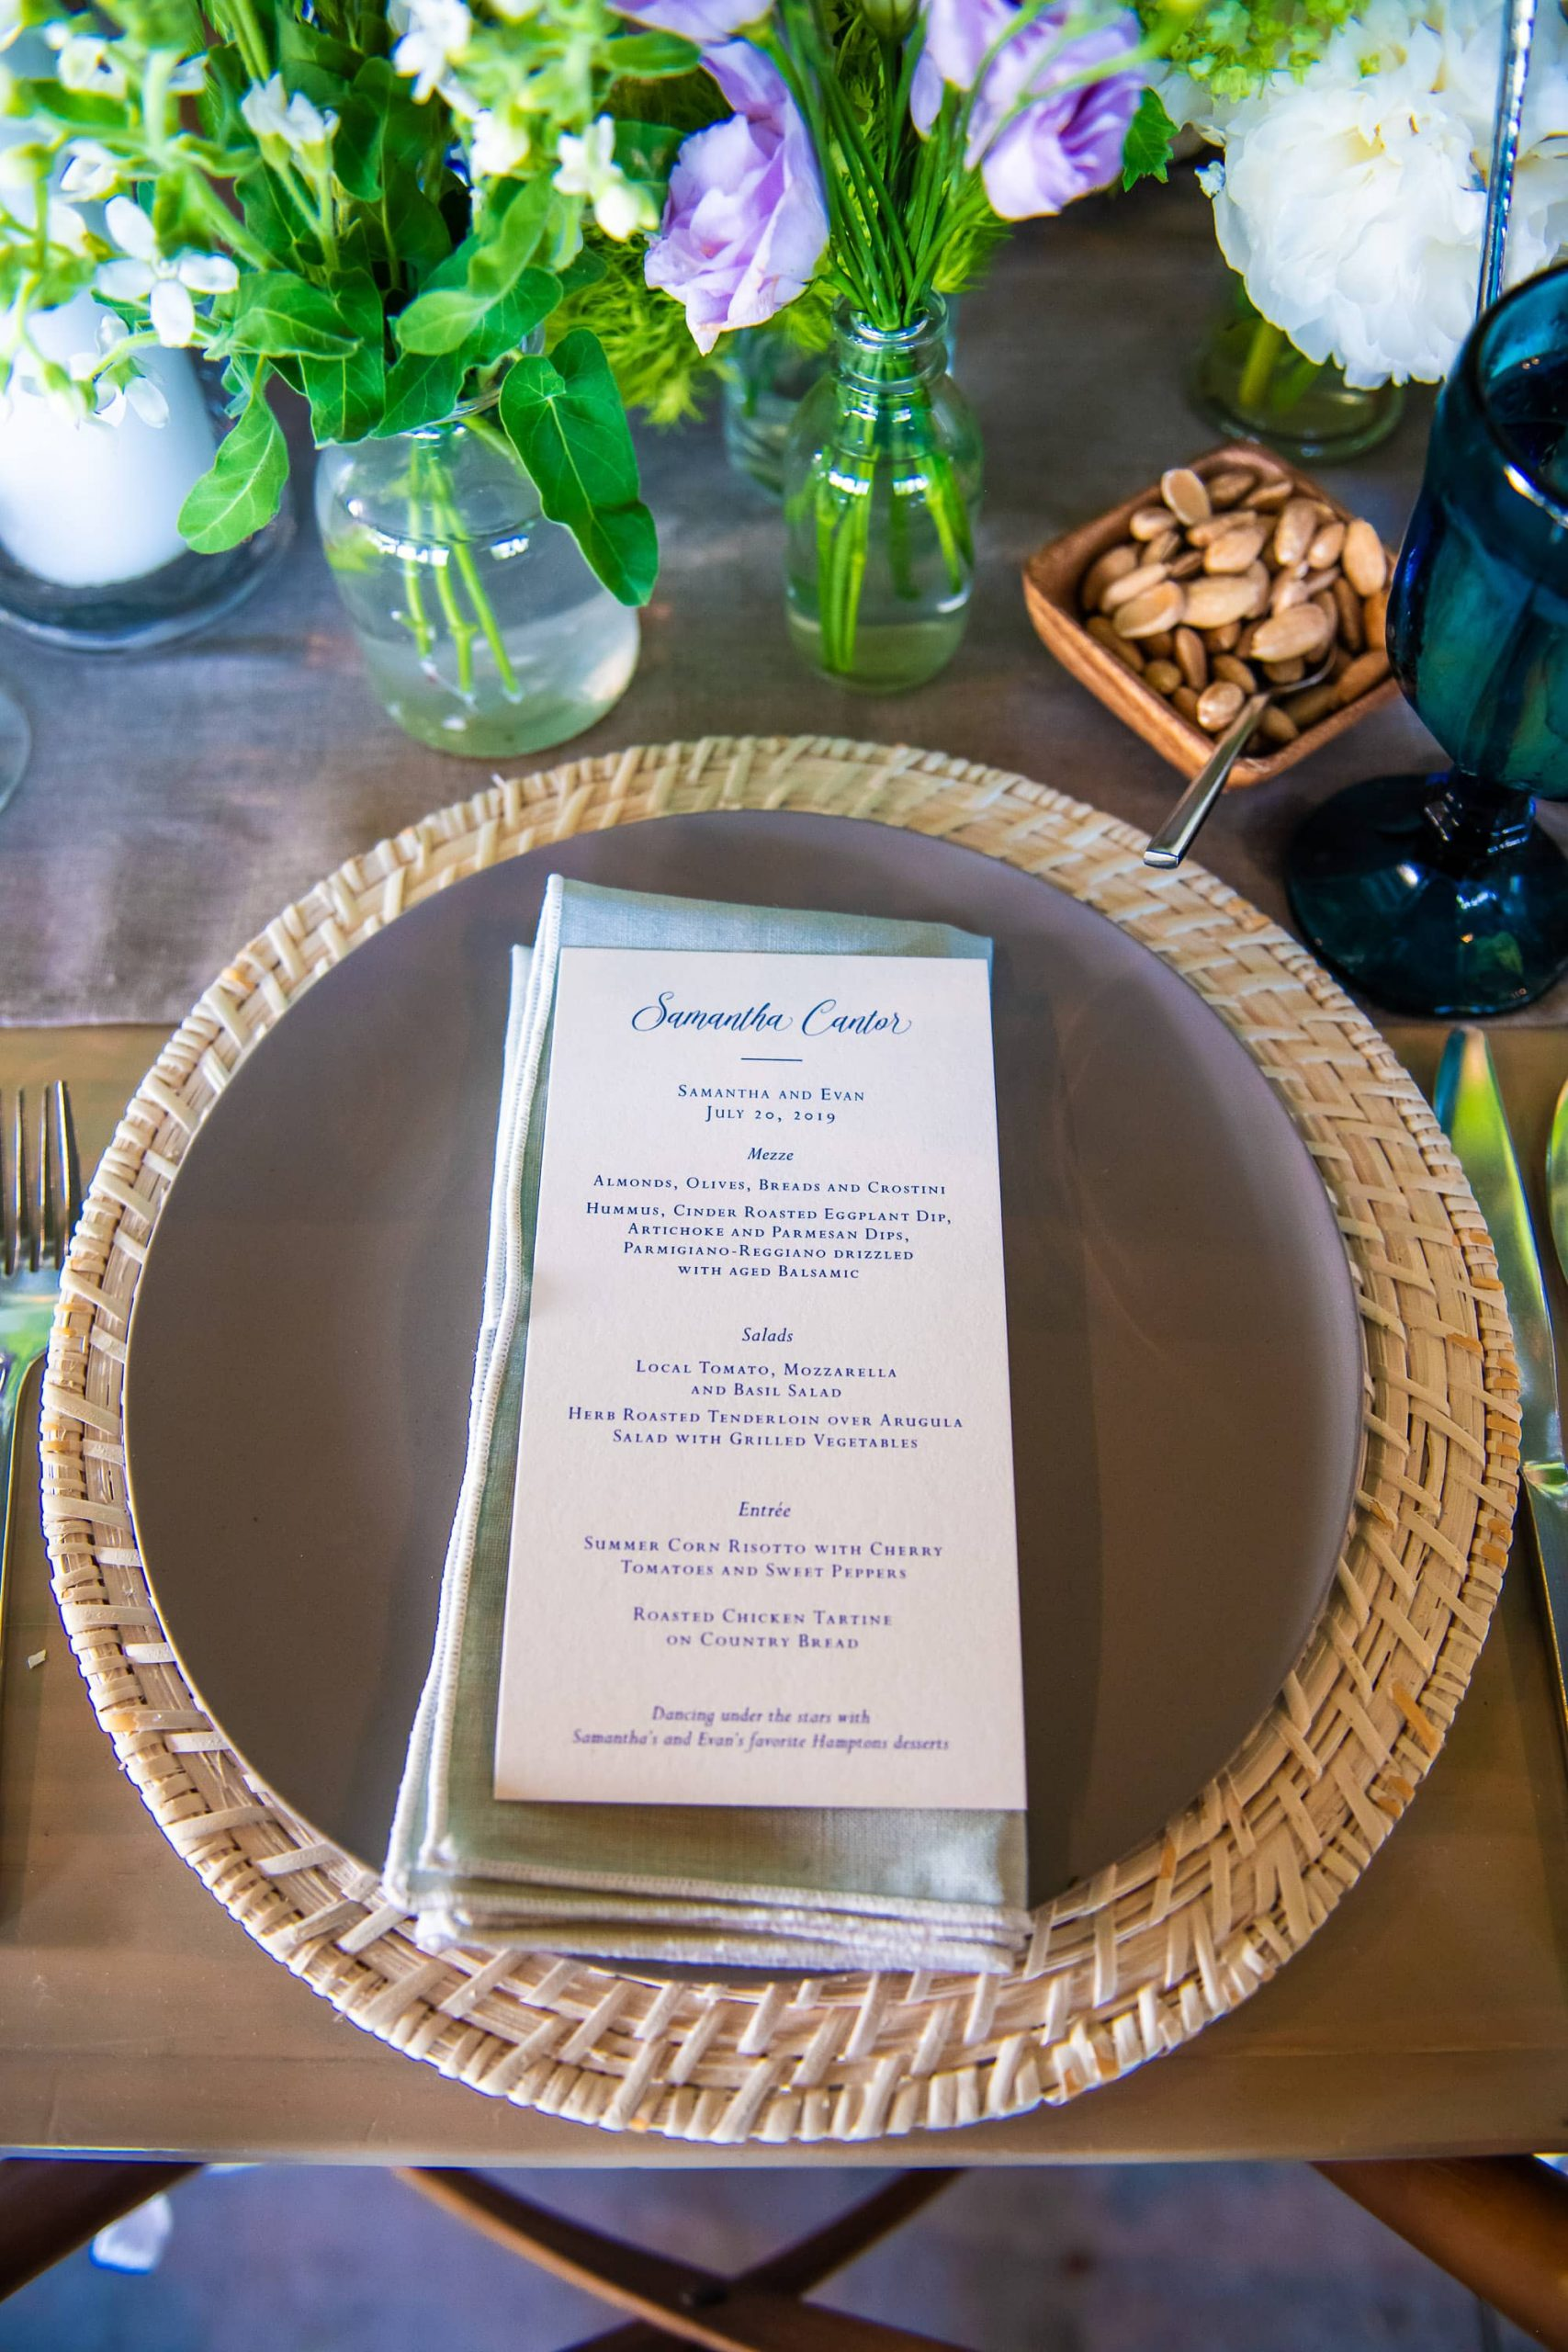 Table setting with menu at this Hamptons wedding weekend held at The Parrish Museum | Photo by Roey Yohai Studio